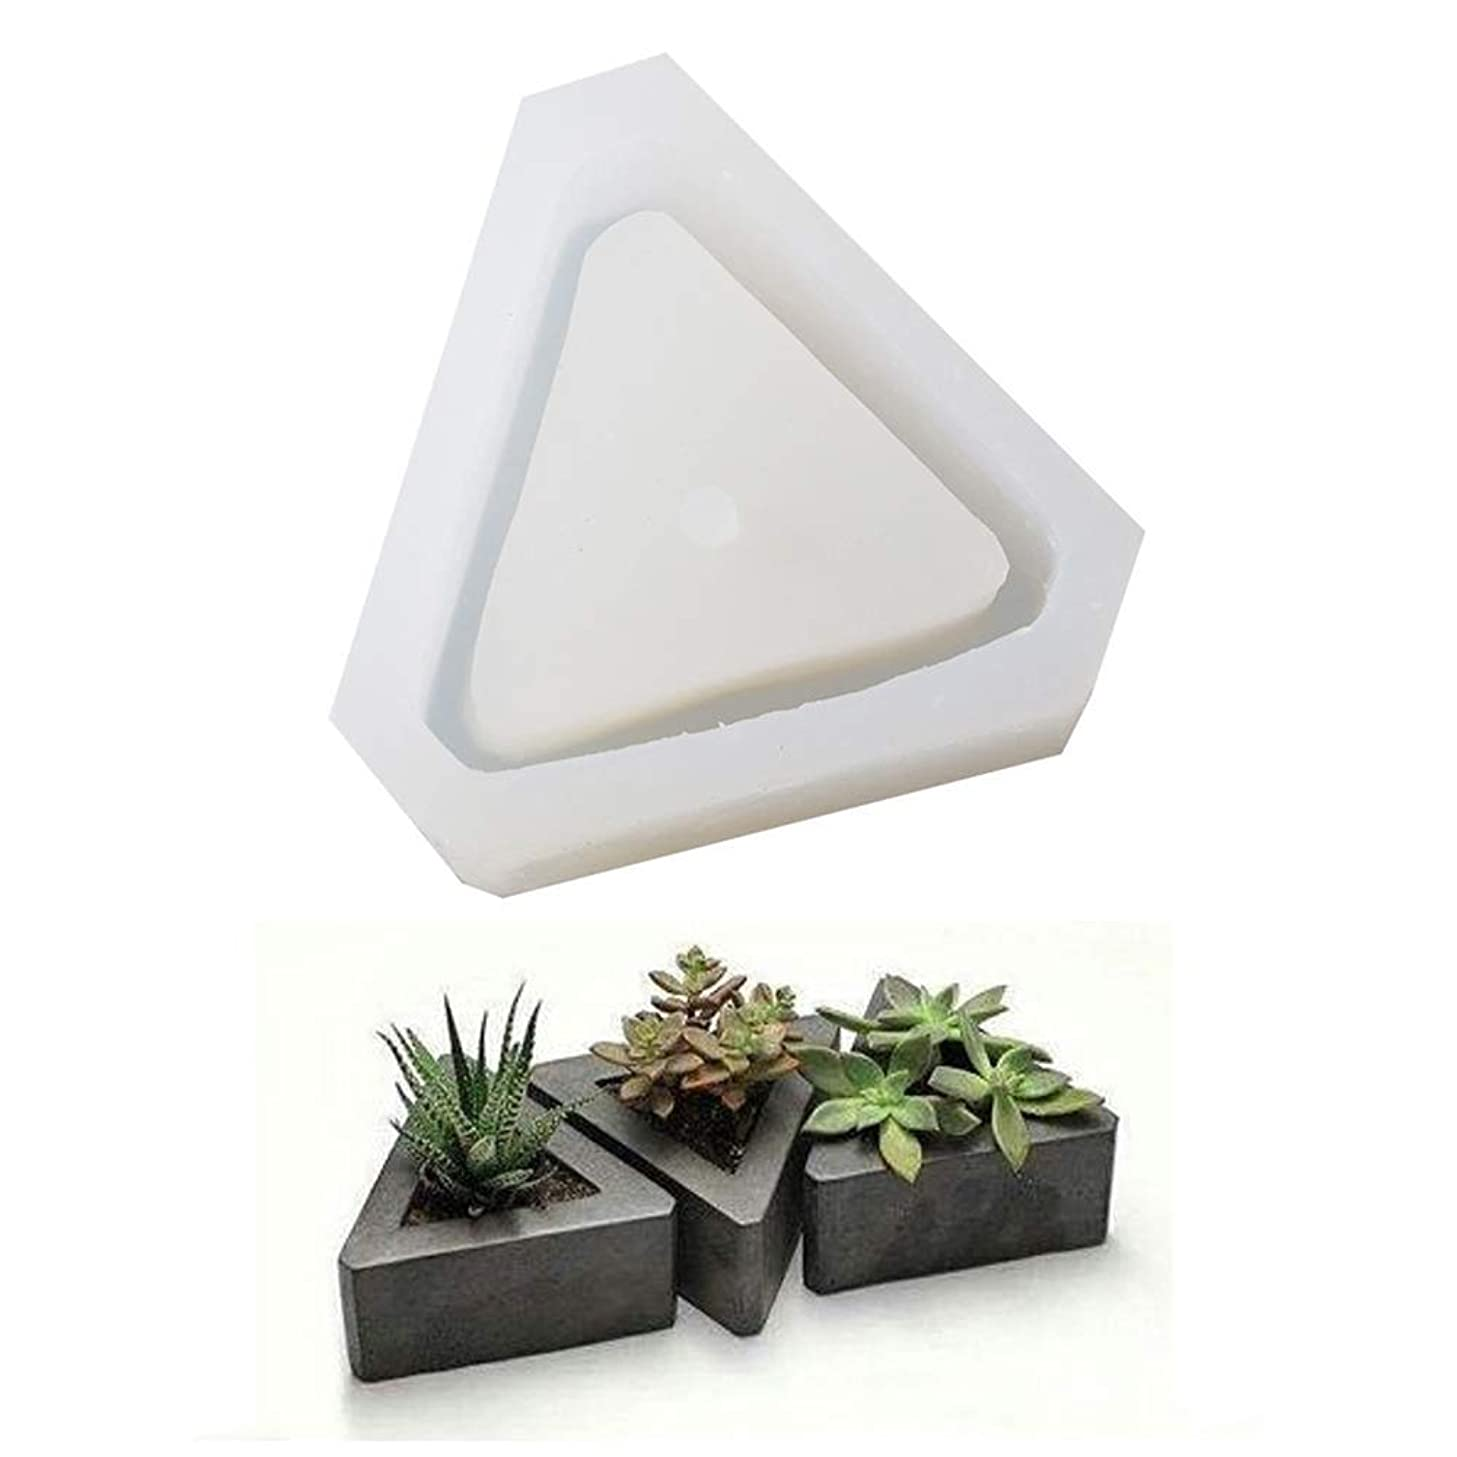 Diamond Shaped Pot Ceramic Clay Mold DIY Silicone Succulent Plants Concrete Planter Vase Molds Handmade Craft Cake Pizza Jelly Microwave and Freezer Mould (Triangel)